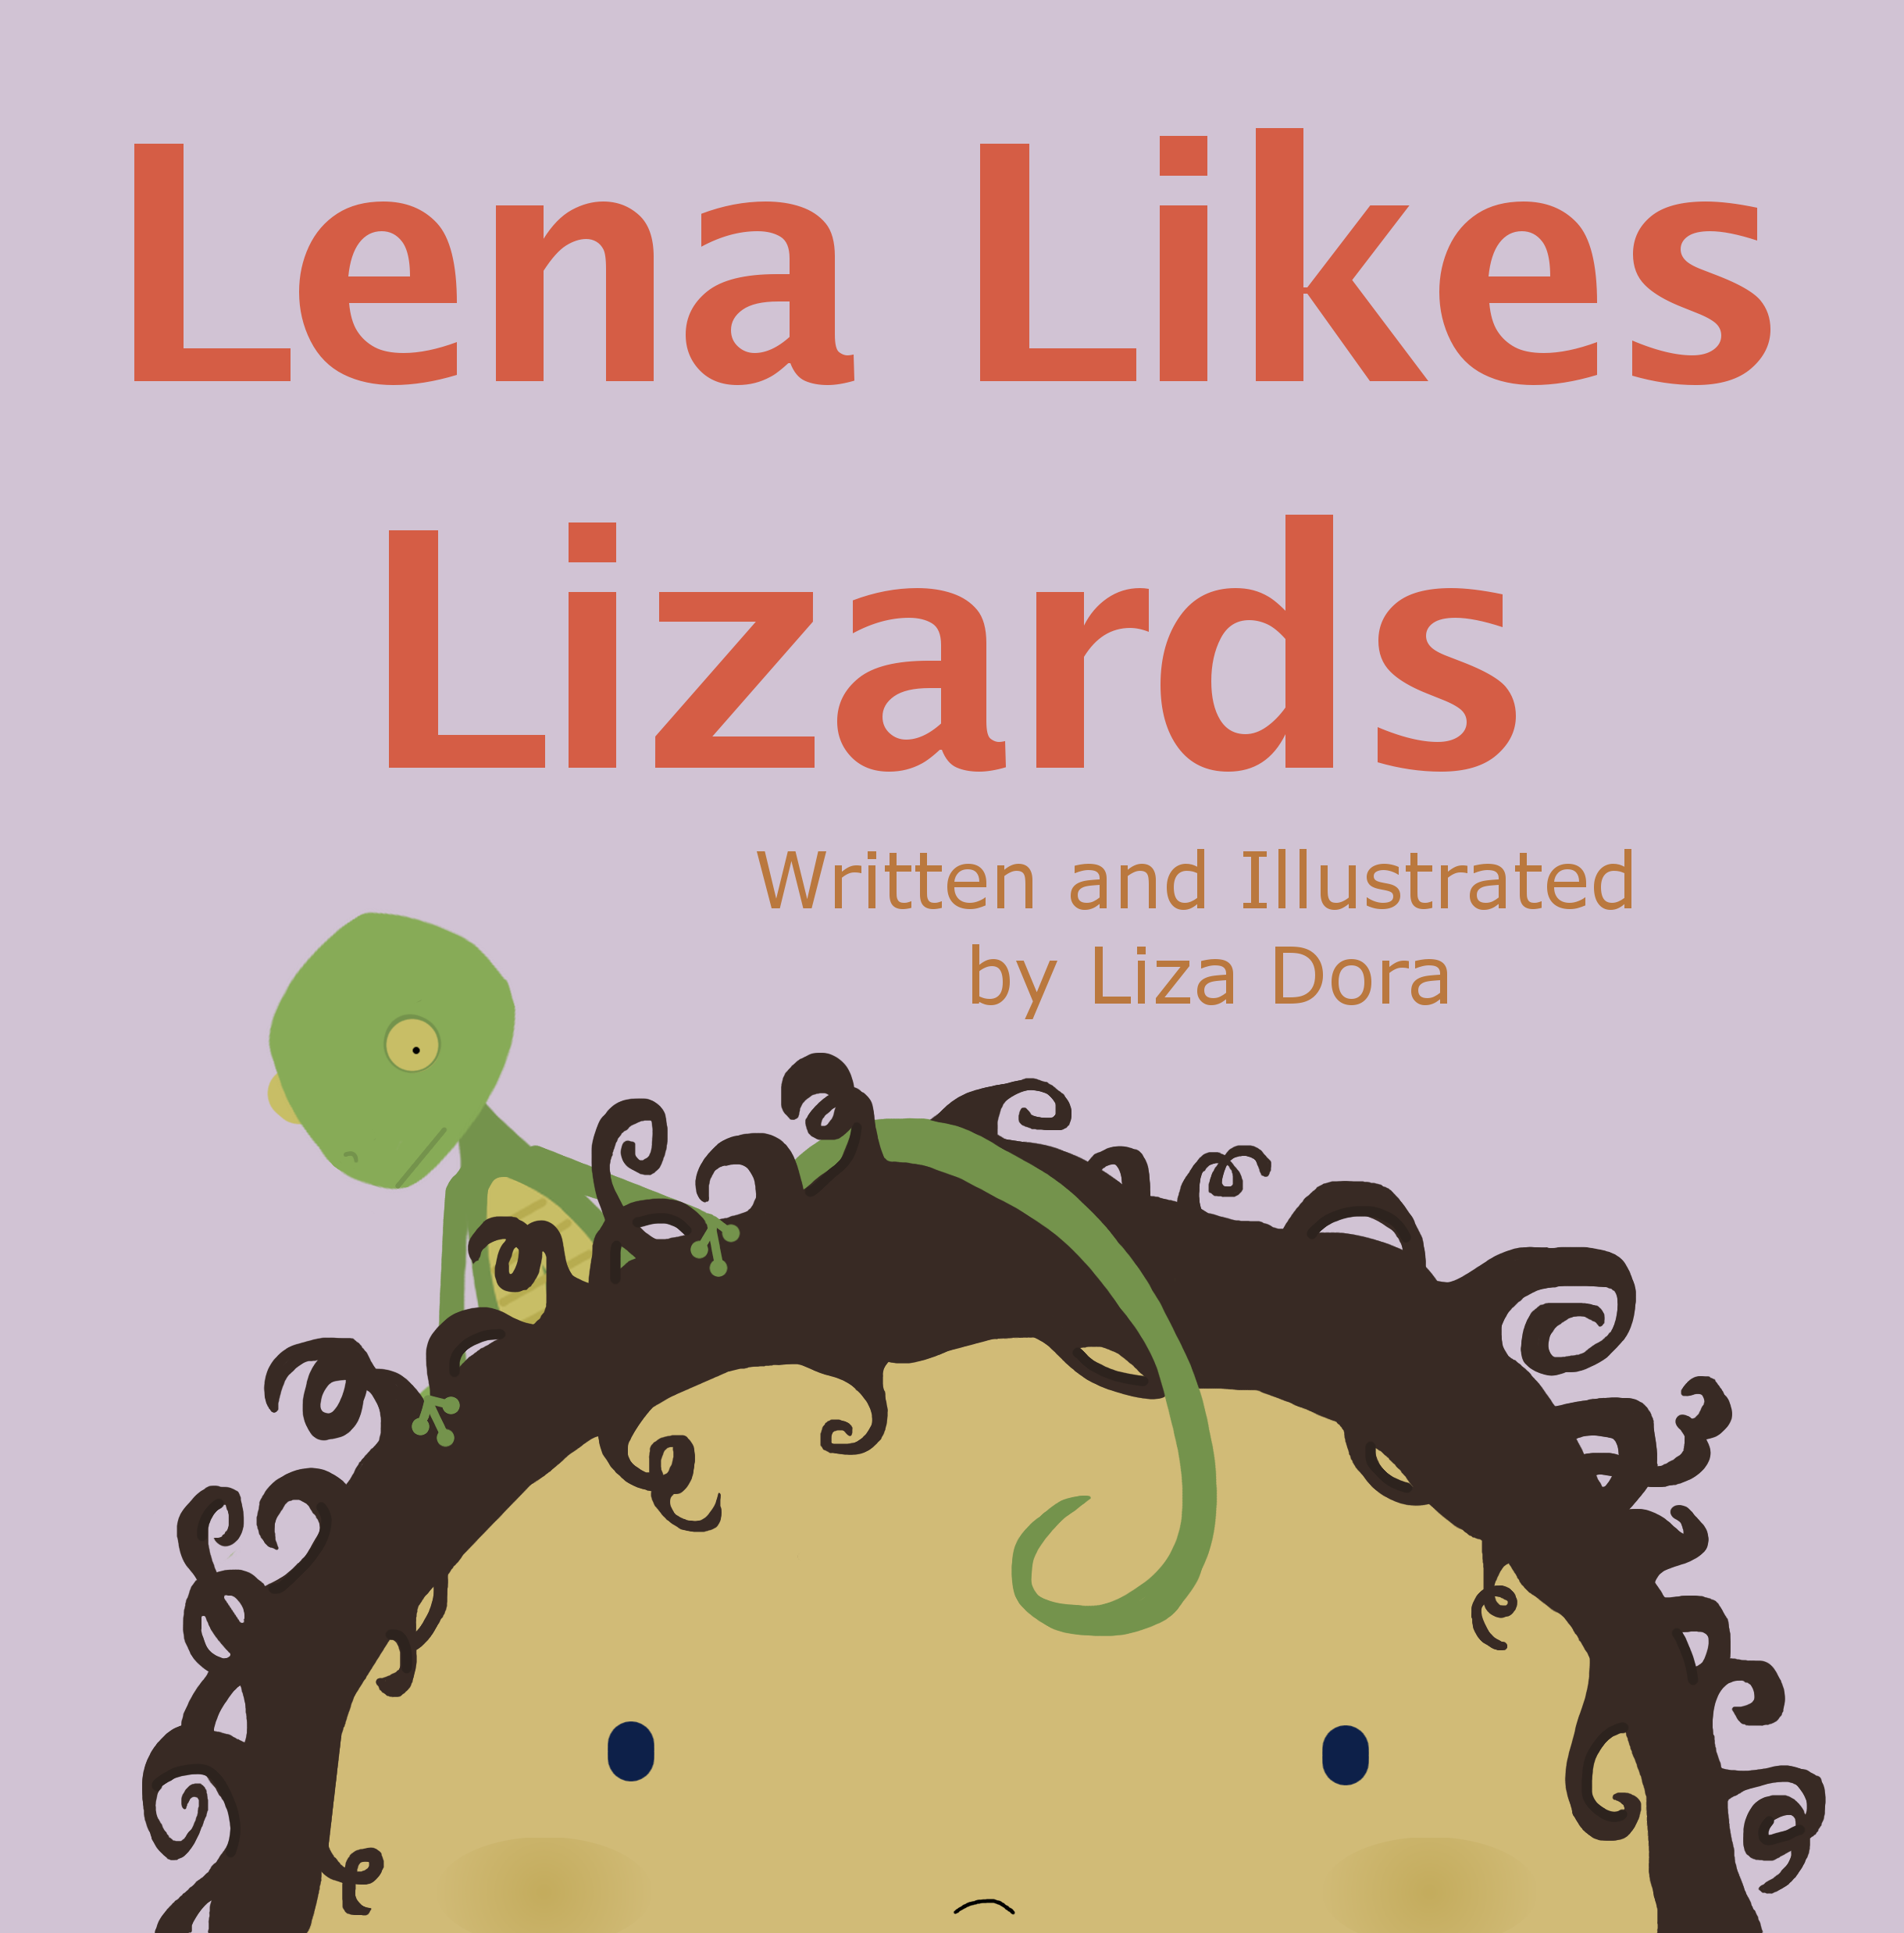 lena-likes-lizards-by-liza-dora